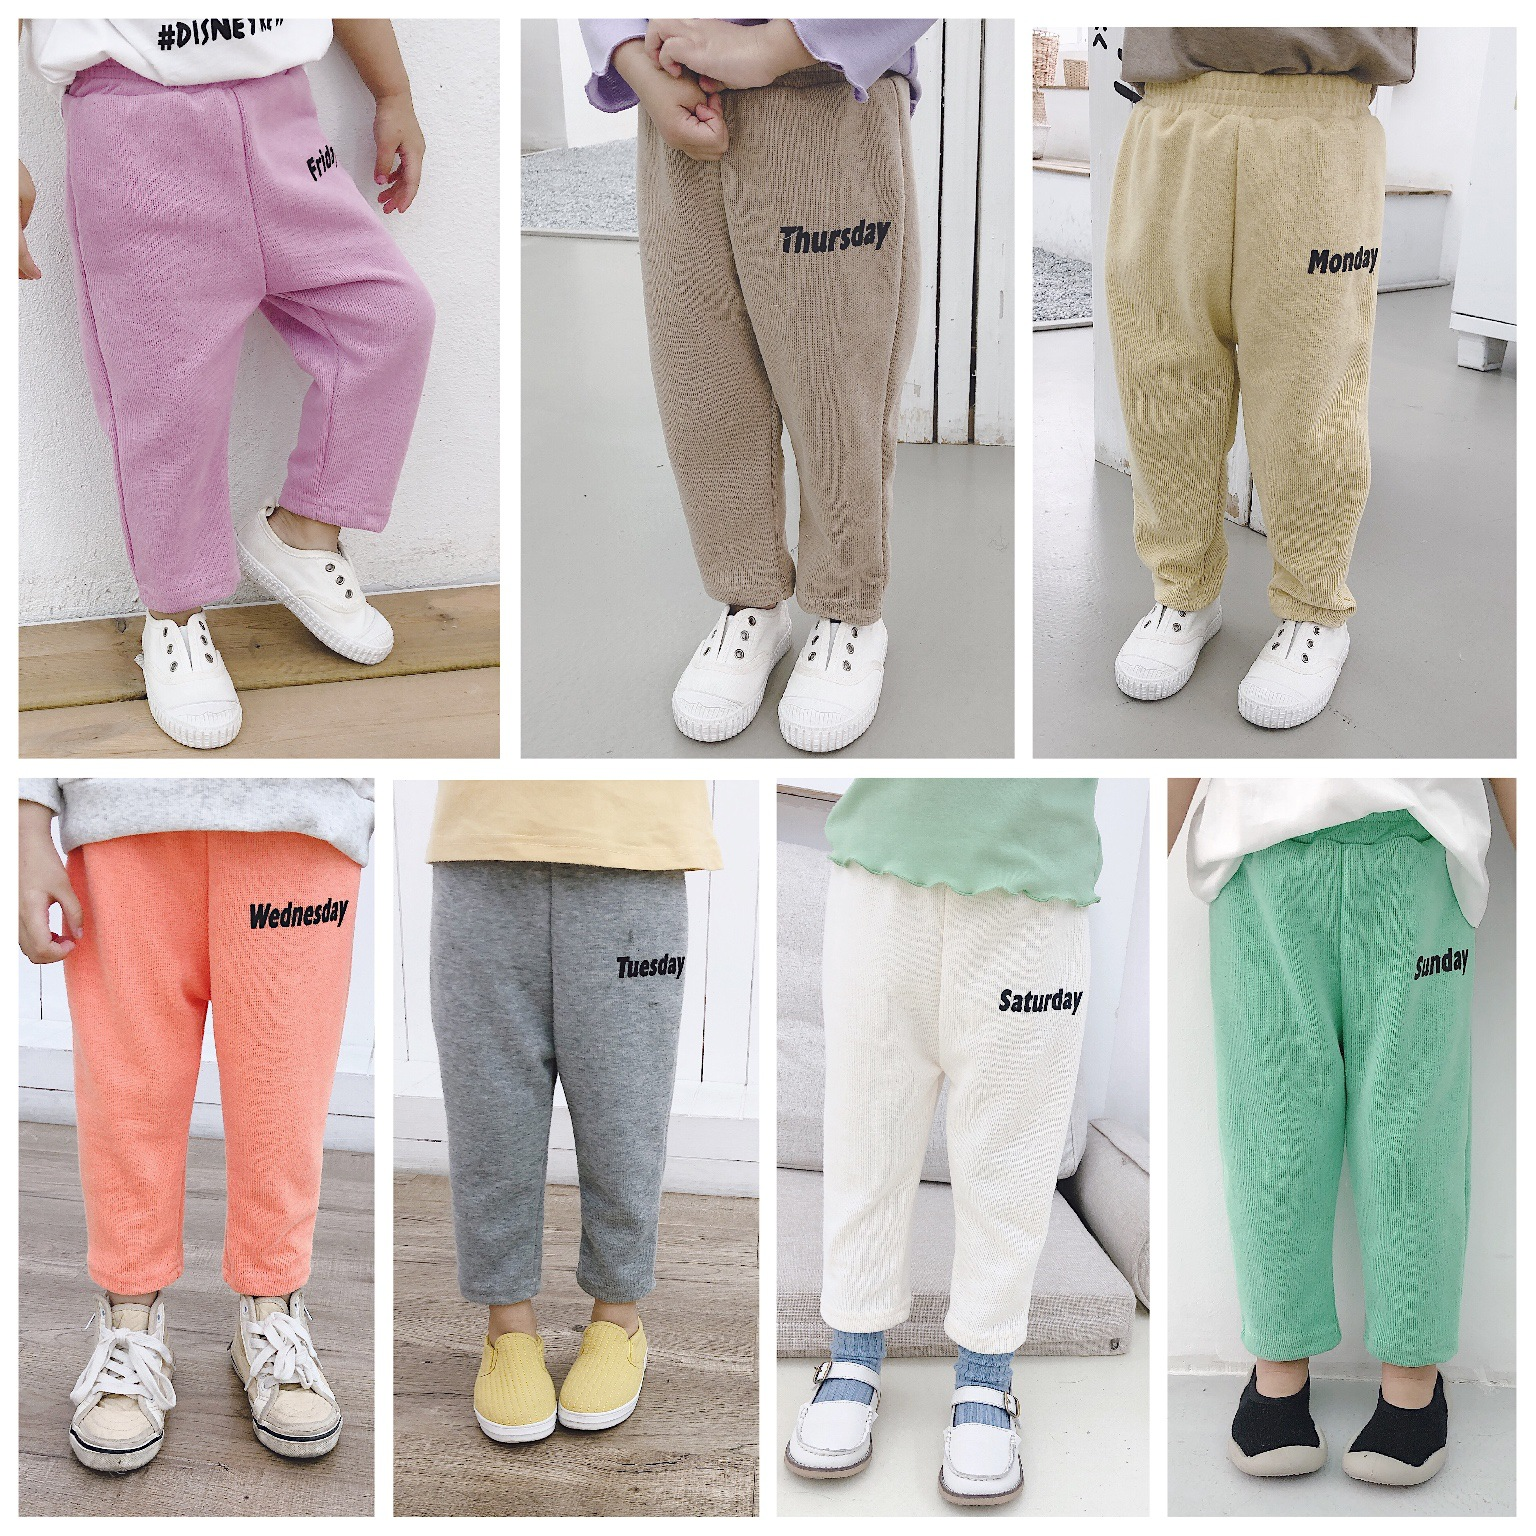 3188 2020 Summer New Children's Multi-color Sunday Pants Knitted Pants Candy Baby Kid Girl Boy Fruit Printed Harem Pants